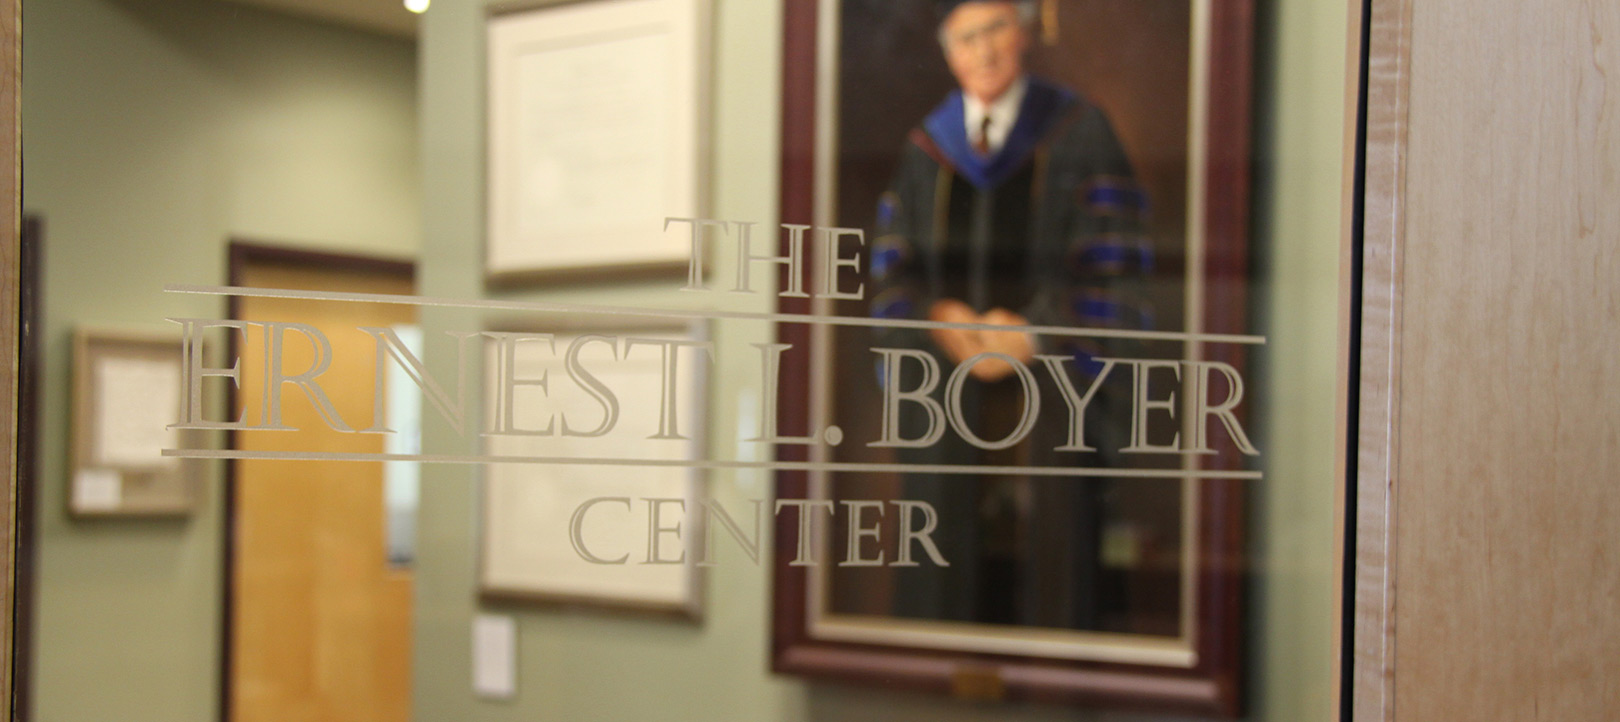 The Ernest L. Boyer Center Boyer Center etching.jpeg